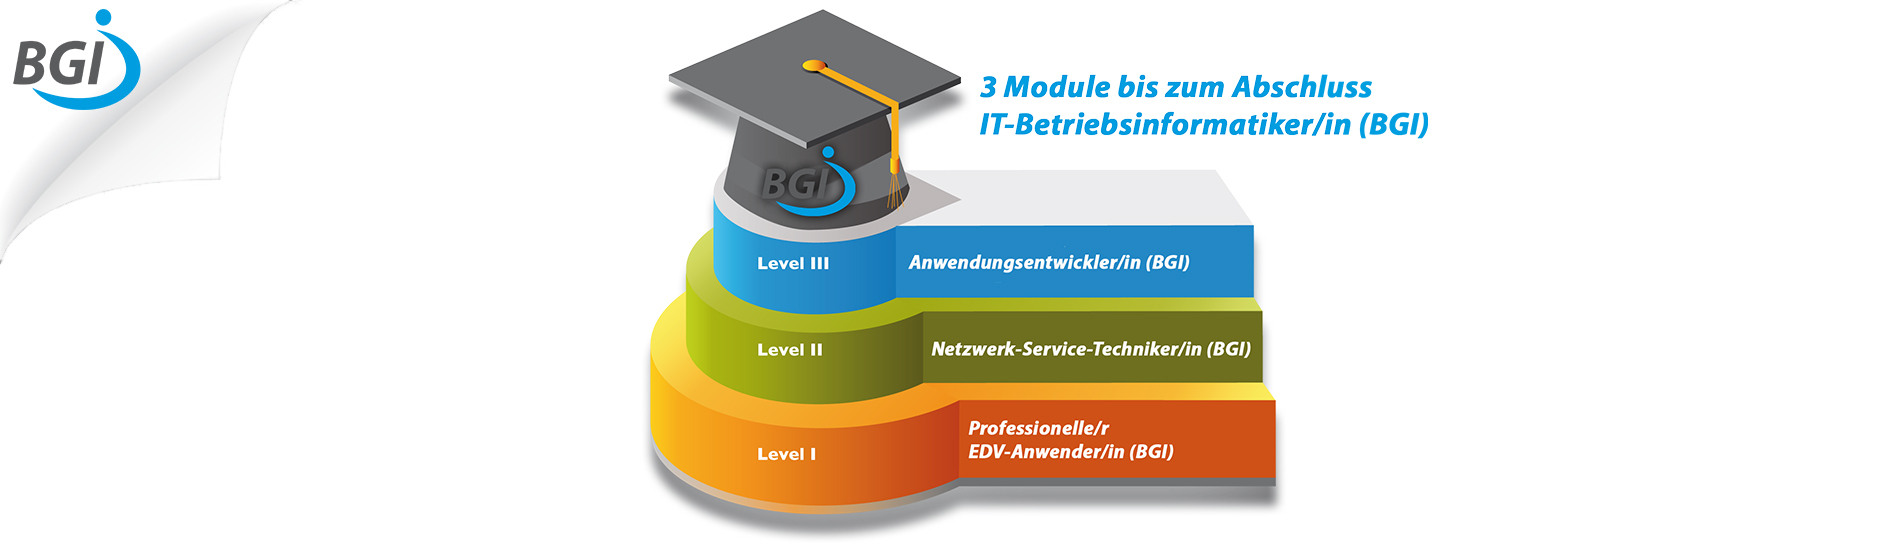 IT-Betriebsinformatiker